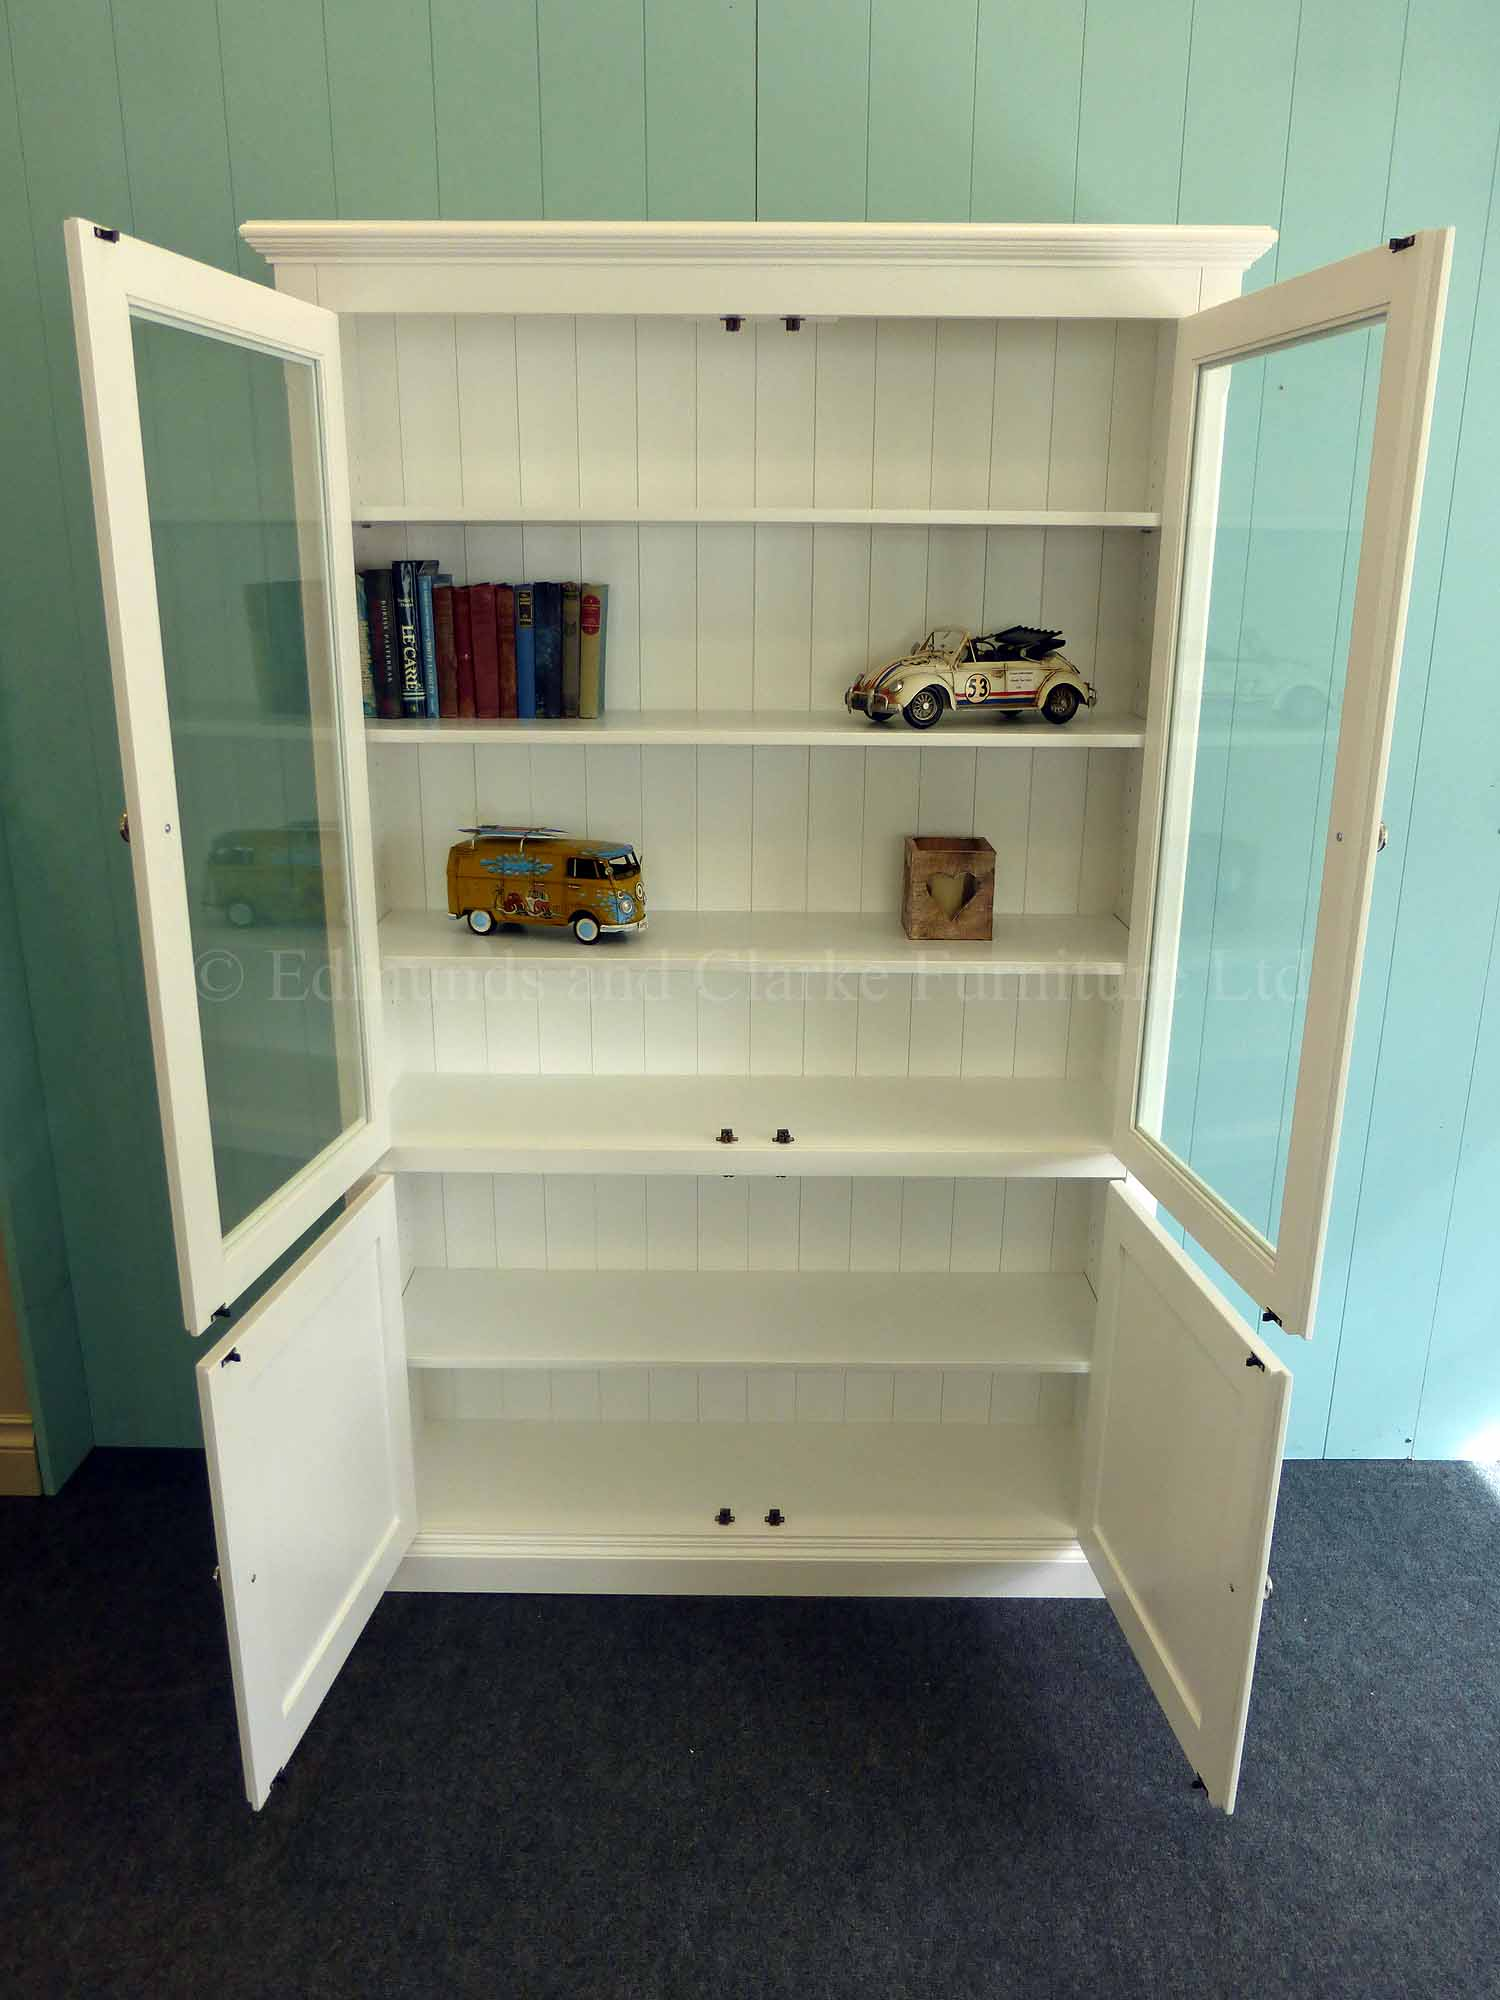 Edmunds painted white glazed and paneled bookcase, adjustable shelves